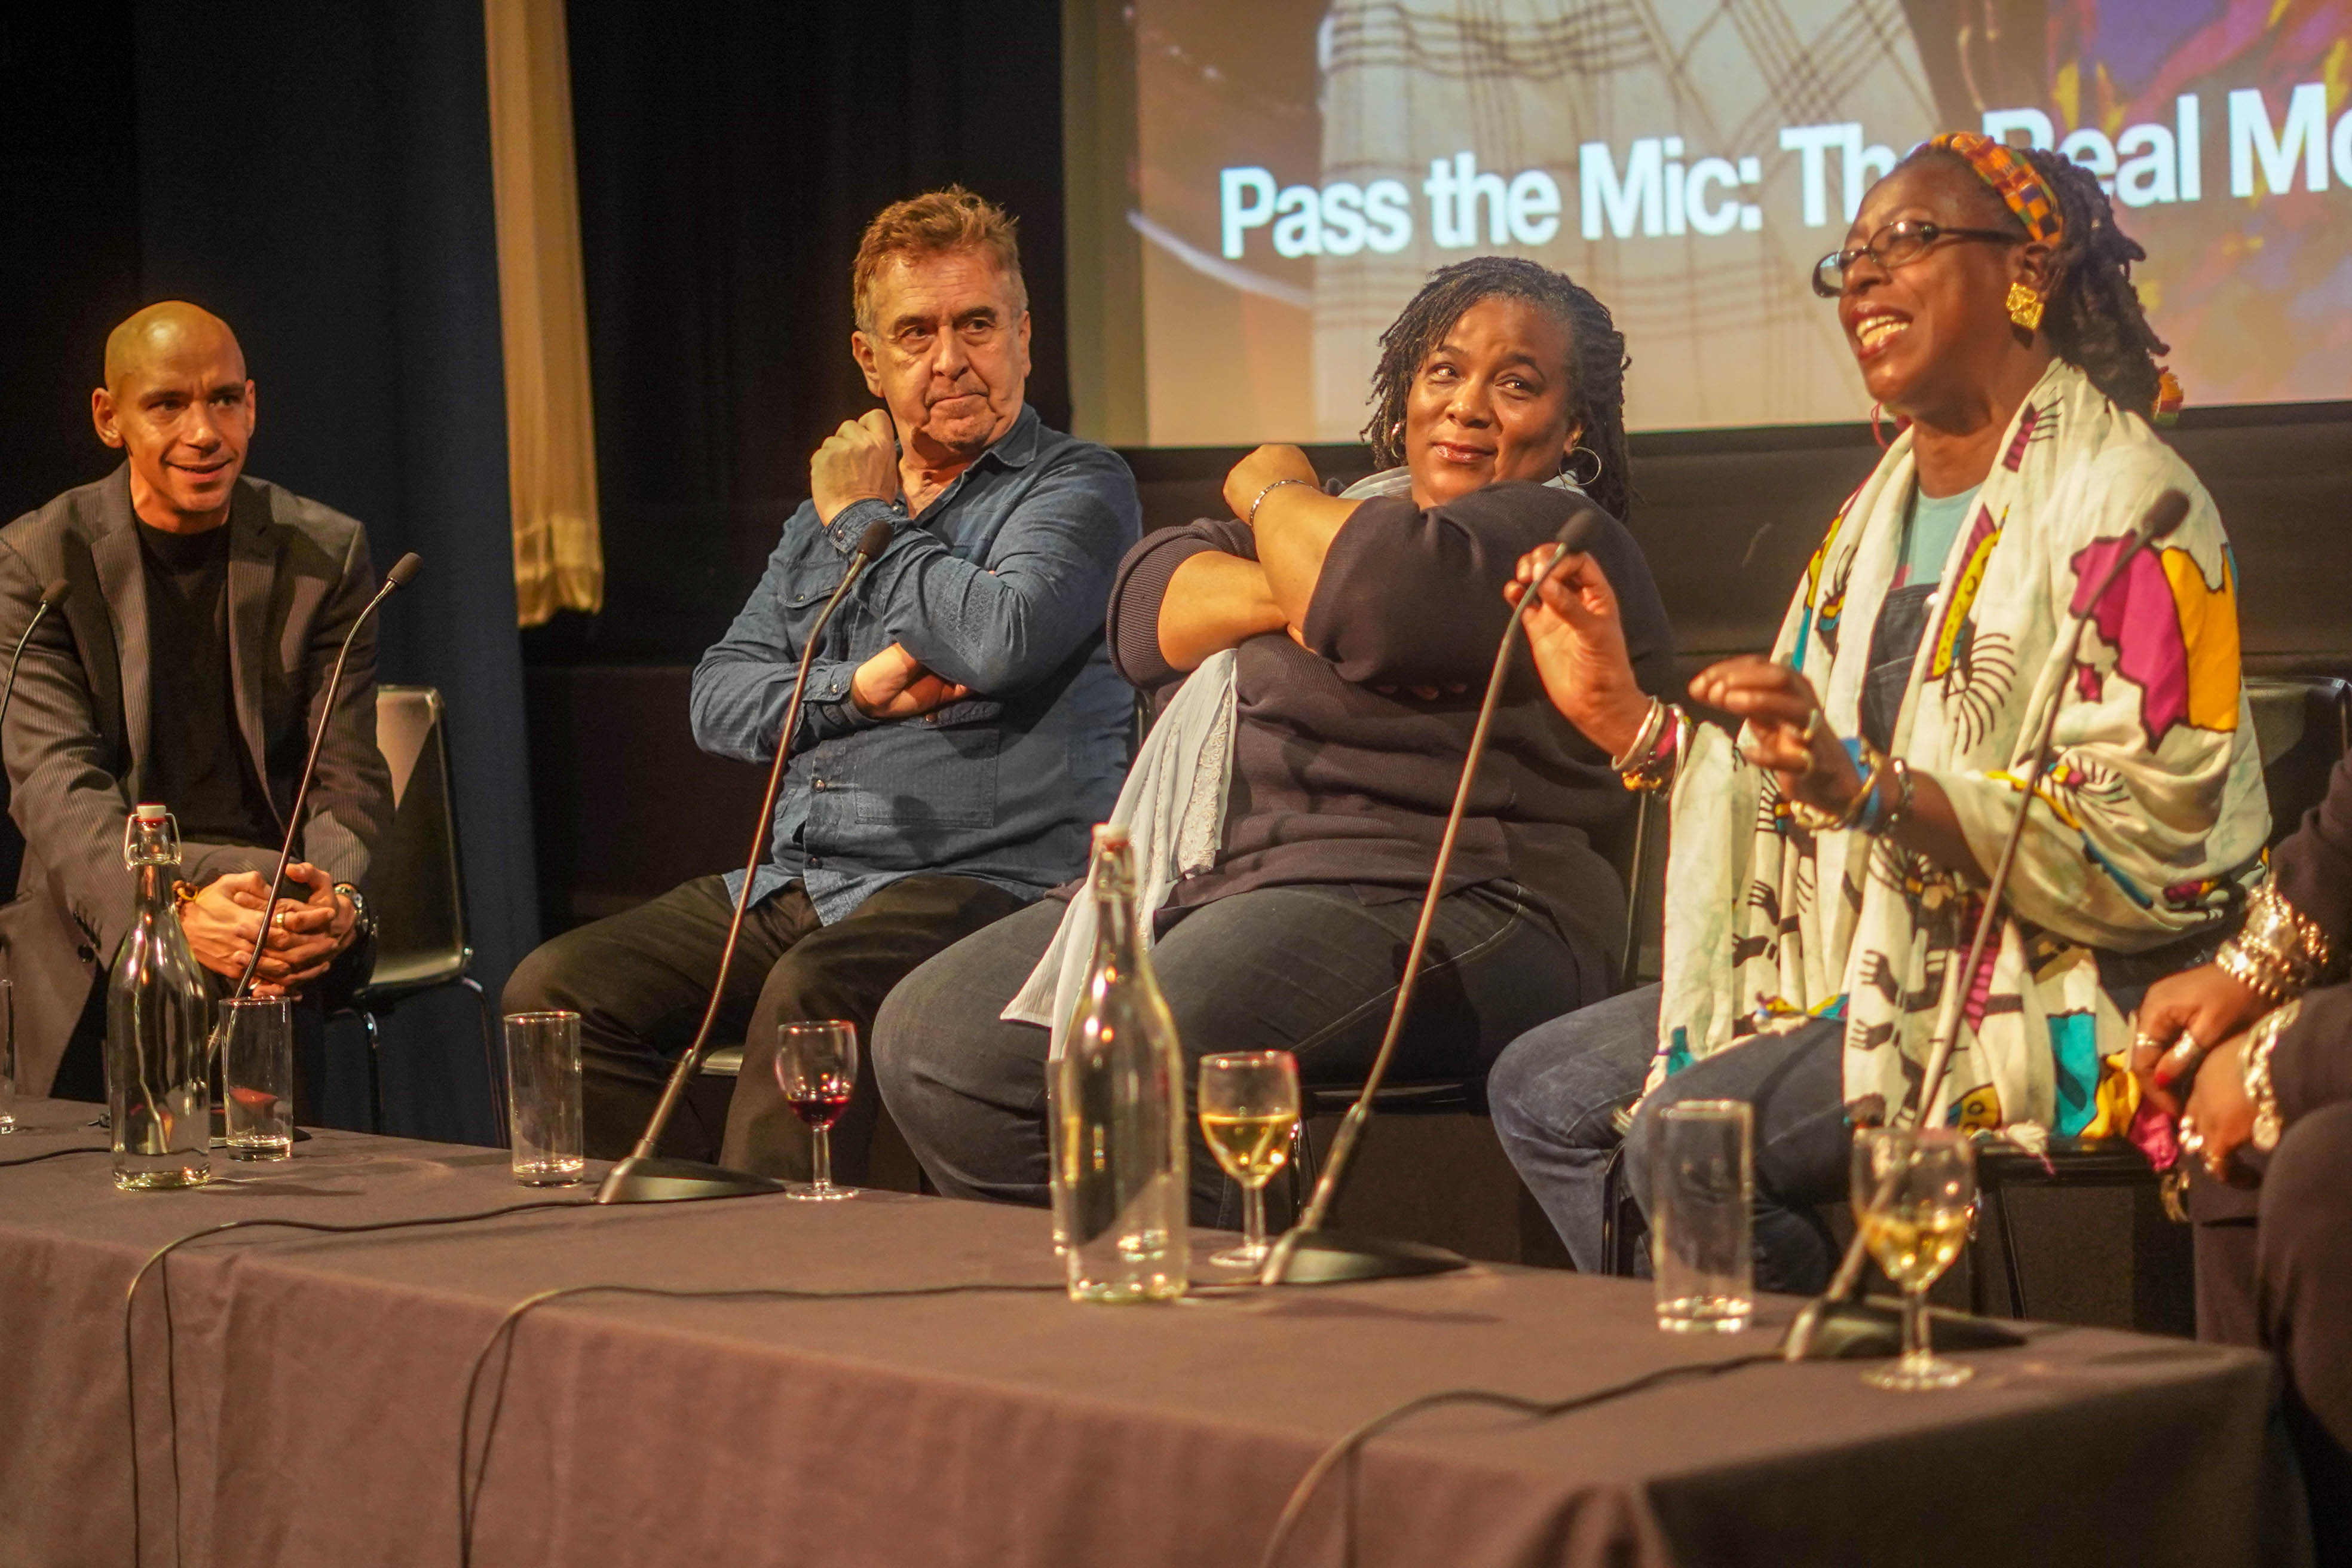 The Real McCoy reunion, BFI - 17 Nov 2018